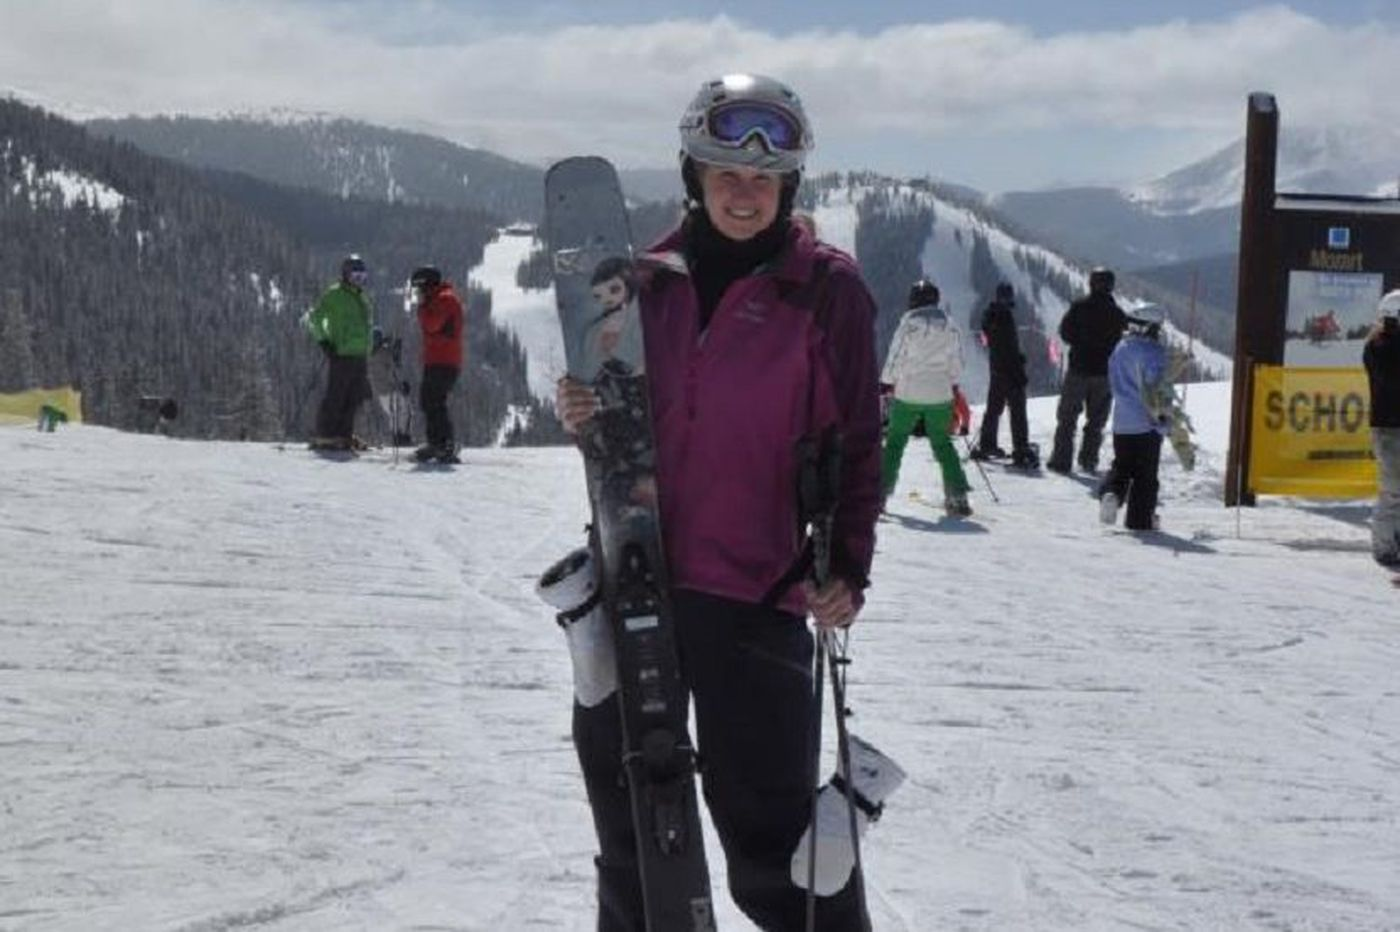 Havertown woman, 43, dies in Colorado mountain hiking accident